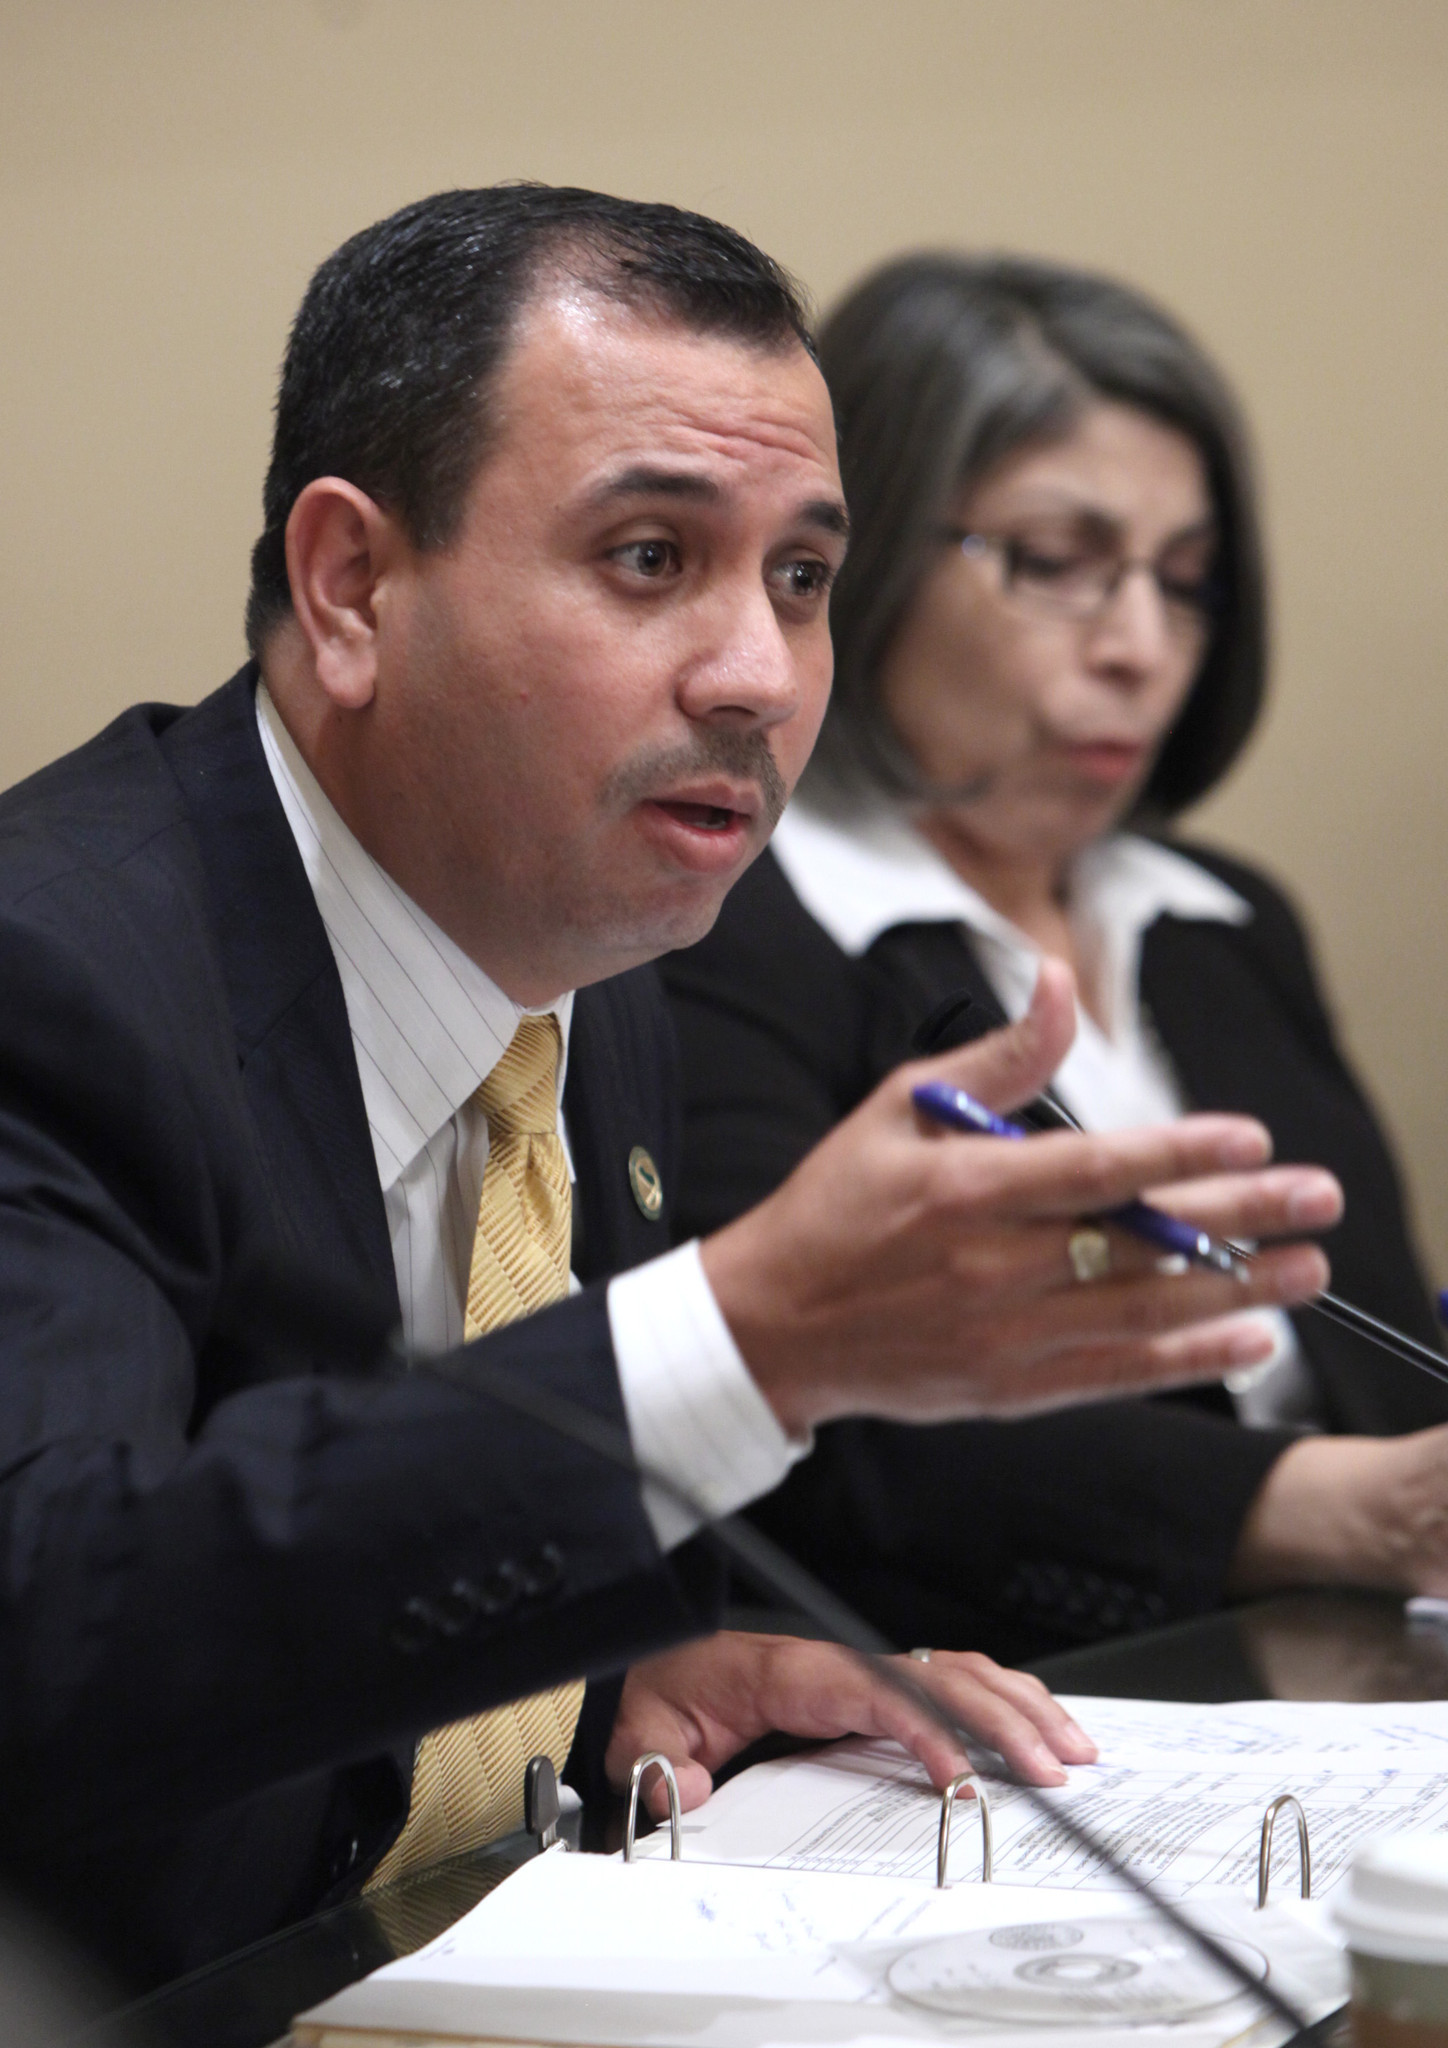 Sen. Tony Mendoza, D-Artesia, wants to expand the Los Angeles County Board of Supervisors from five to seven members. (Rich Pedroncelli / Associated Press)